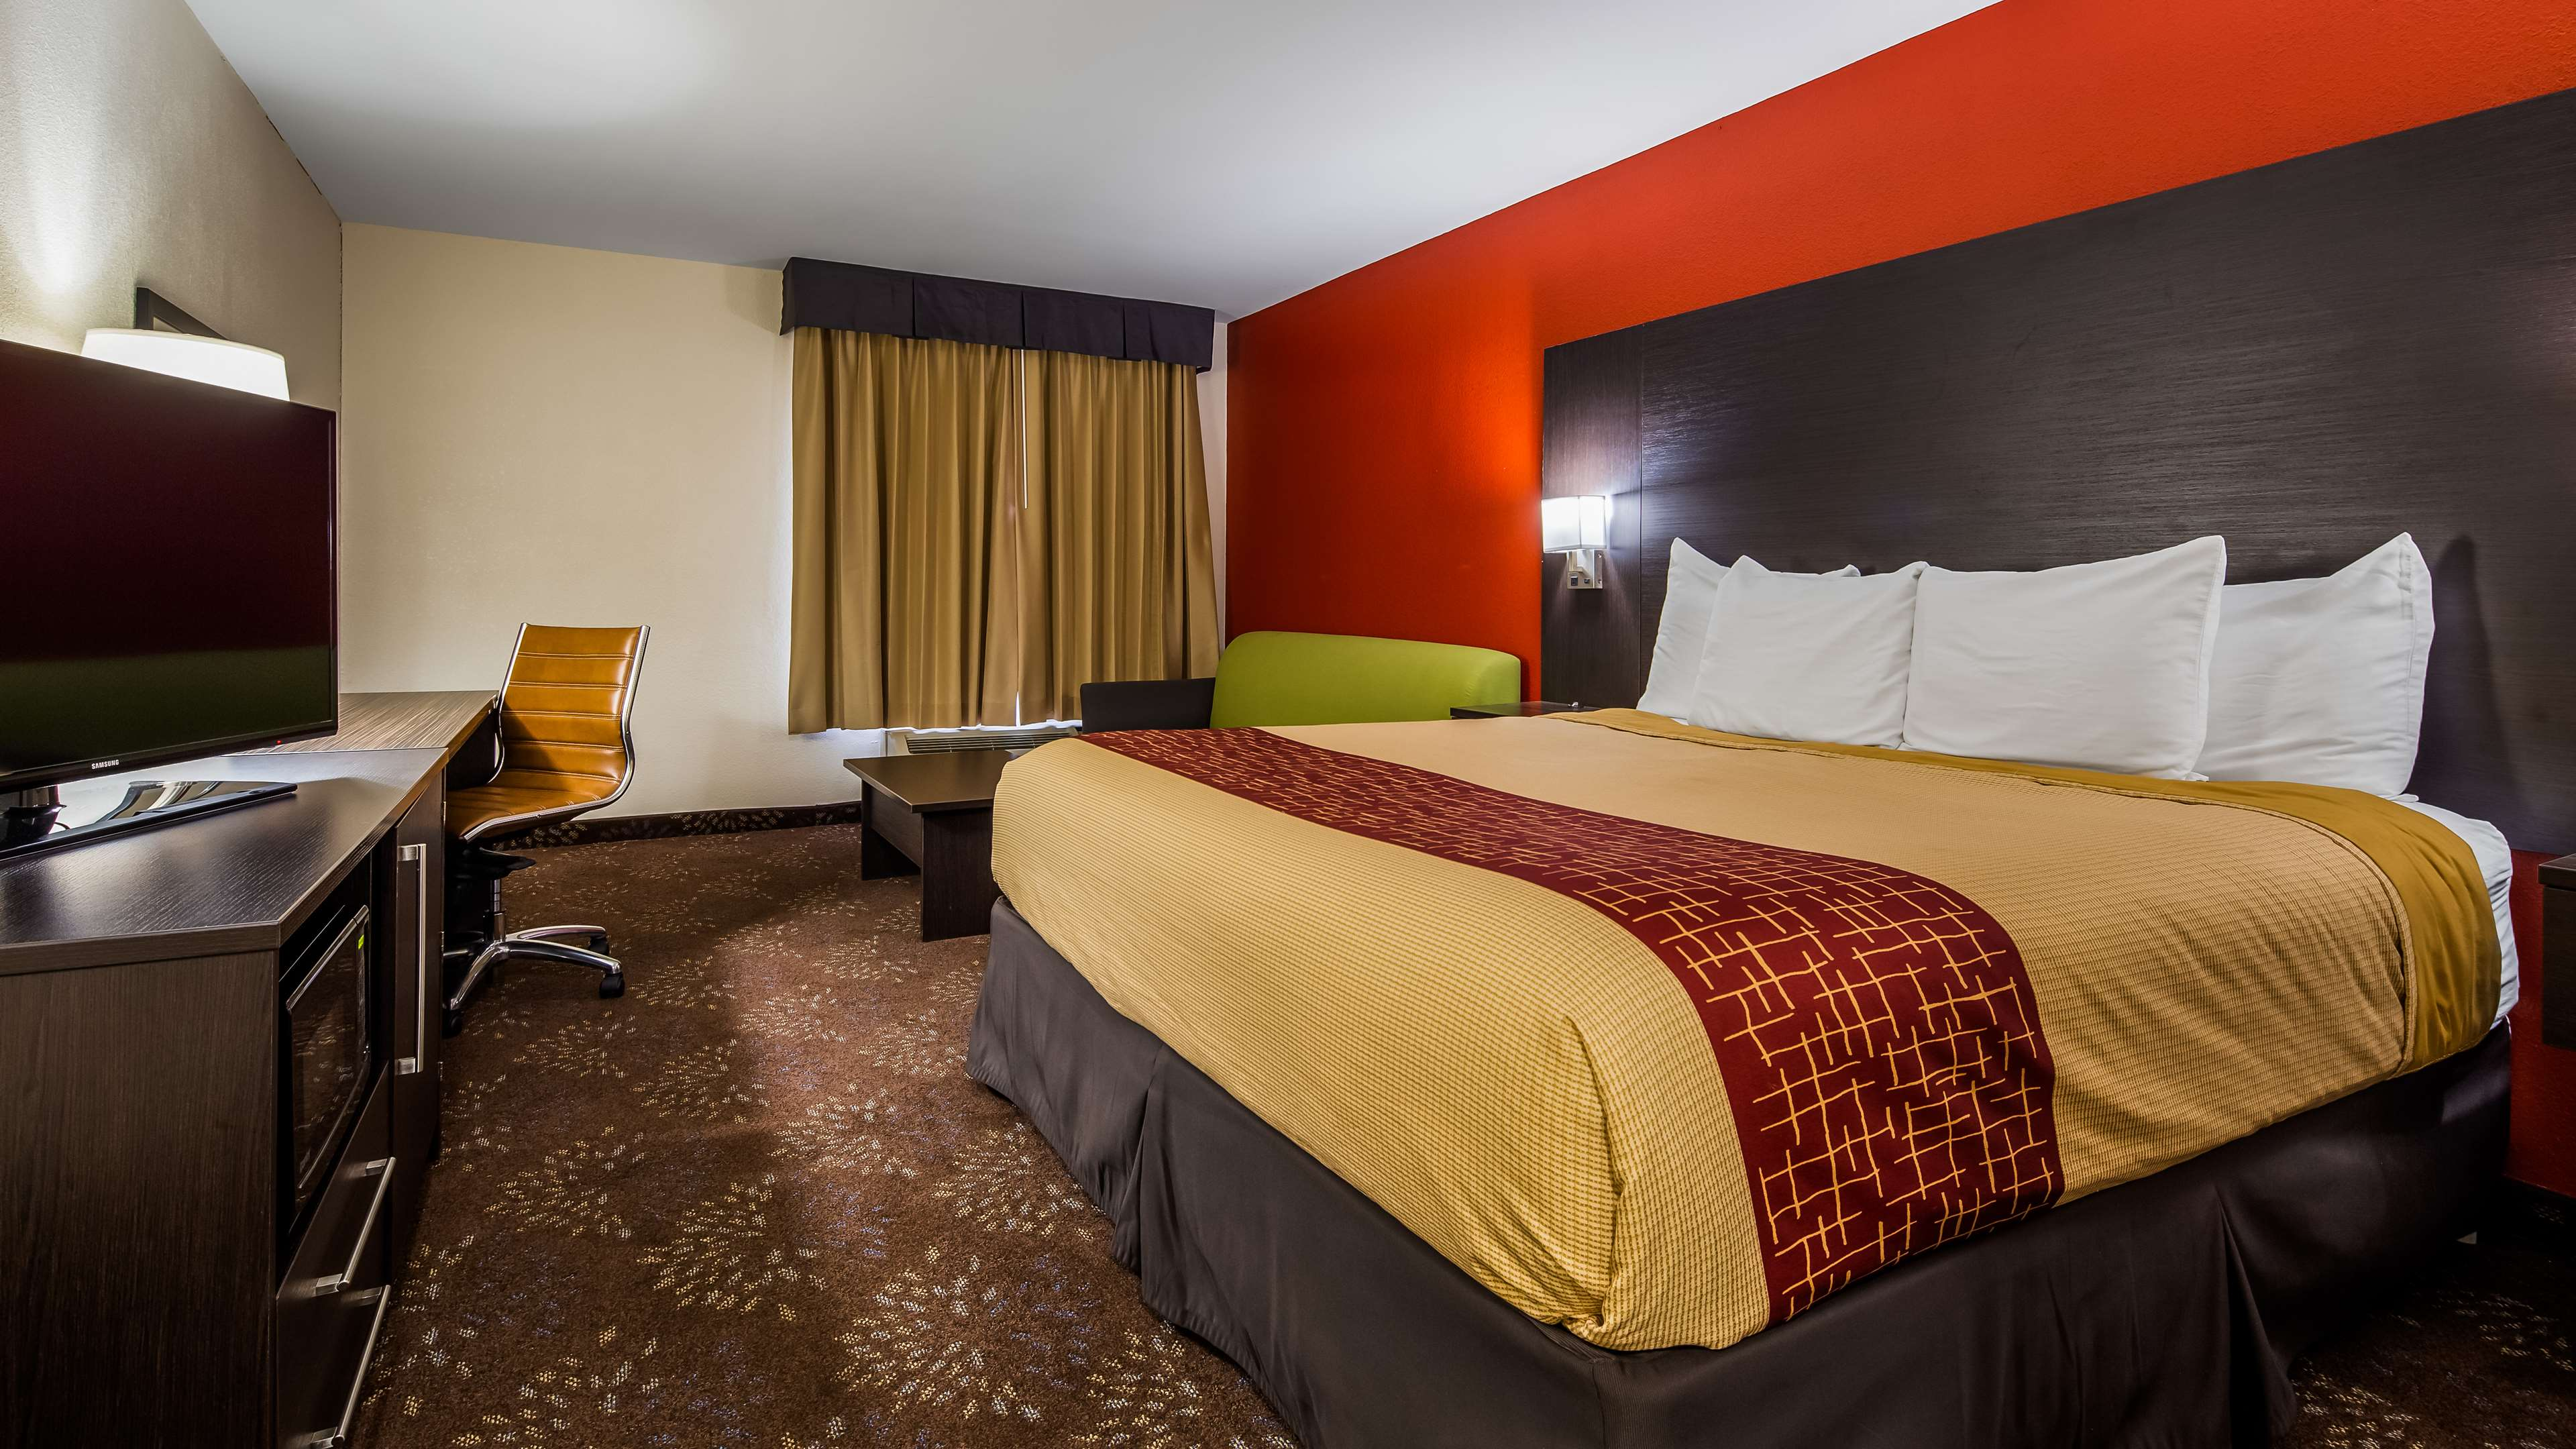 SureStay Plus Hotel by Best Western Evansville image 7